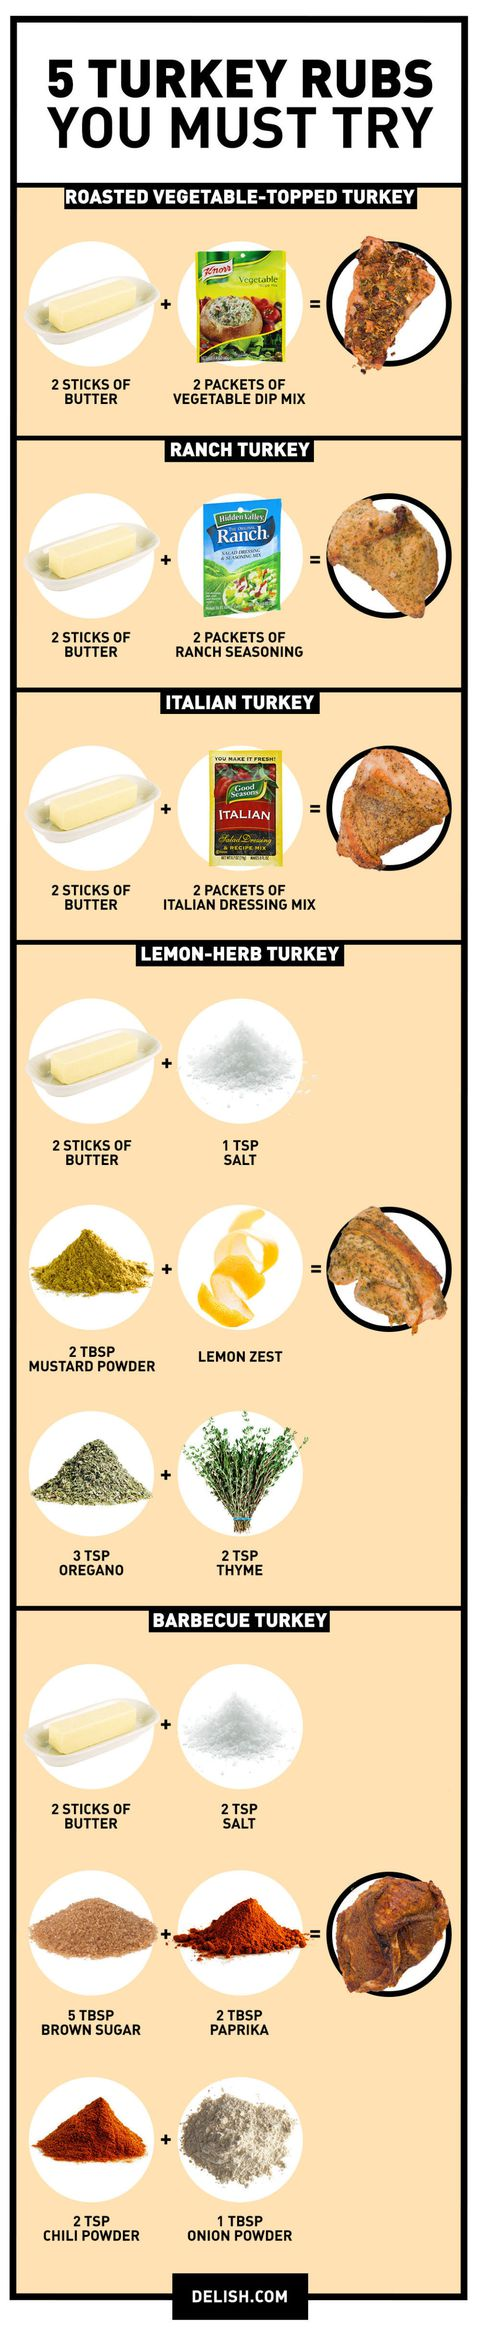 5 Turkey Rubs You Need to Try